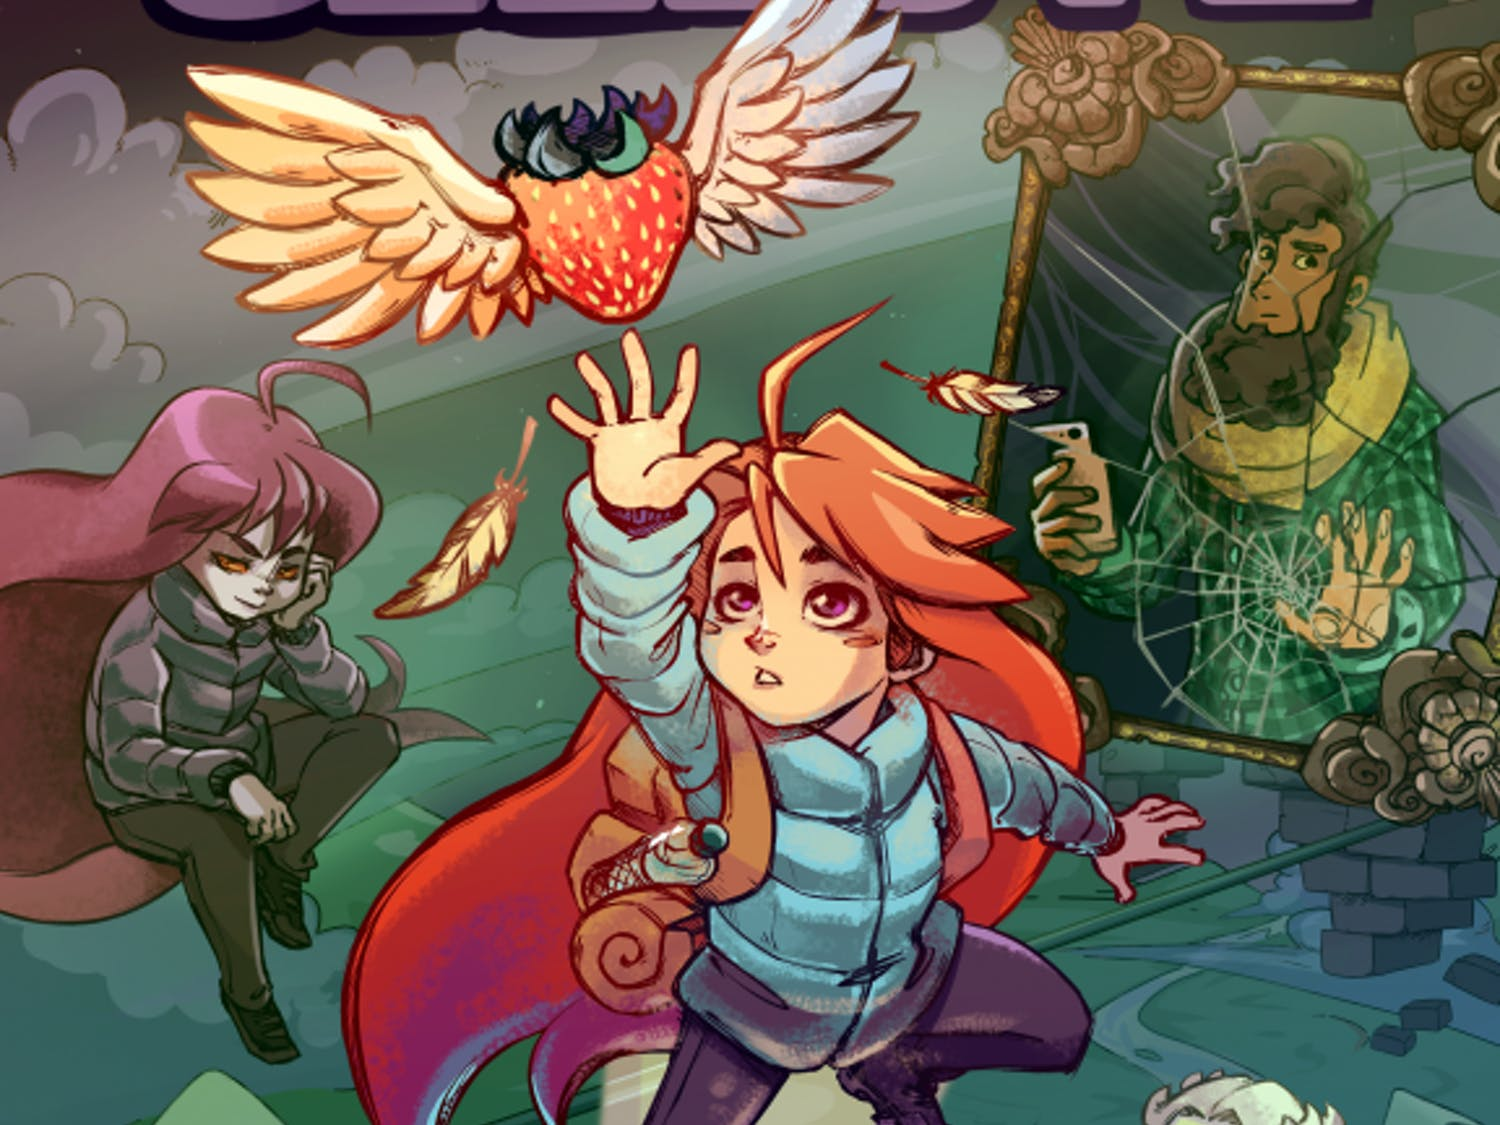 """Celeste"" is out now for PlayStation 4, Xbox One, Switch, PC, macOS and Linux."